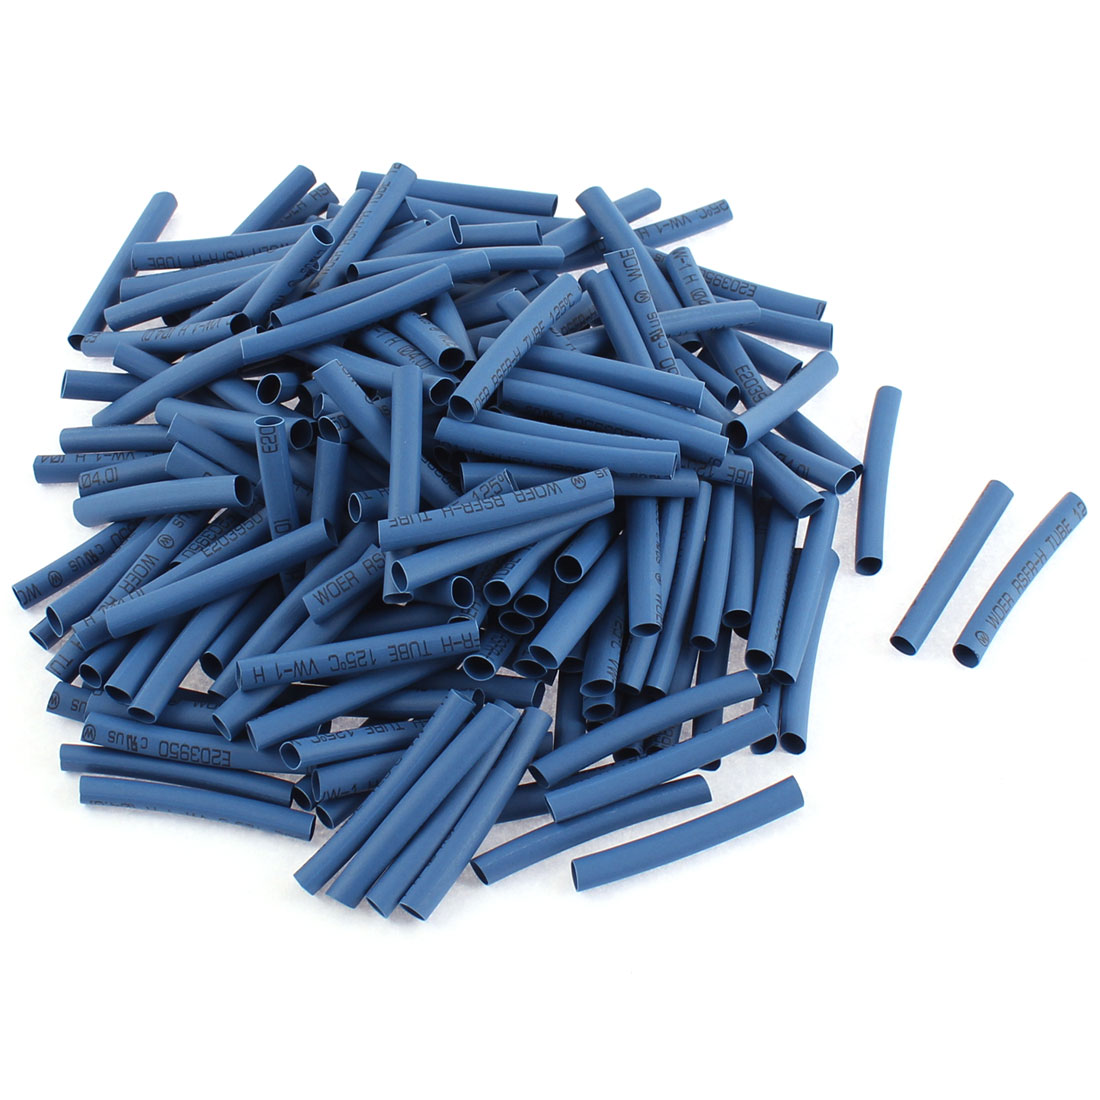 Electrical Connection Cable Sleeve 40mm Long Heat Shrink Tubing Wrap Blue 200Pcs